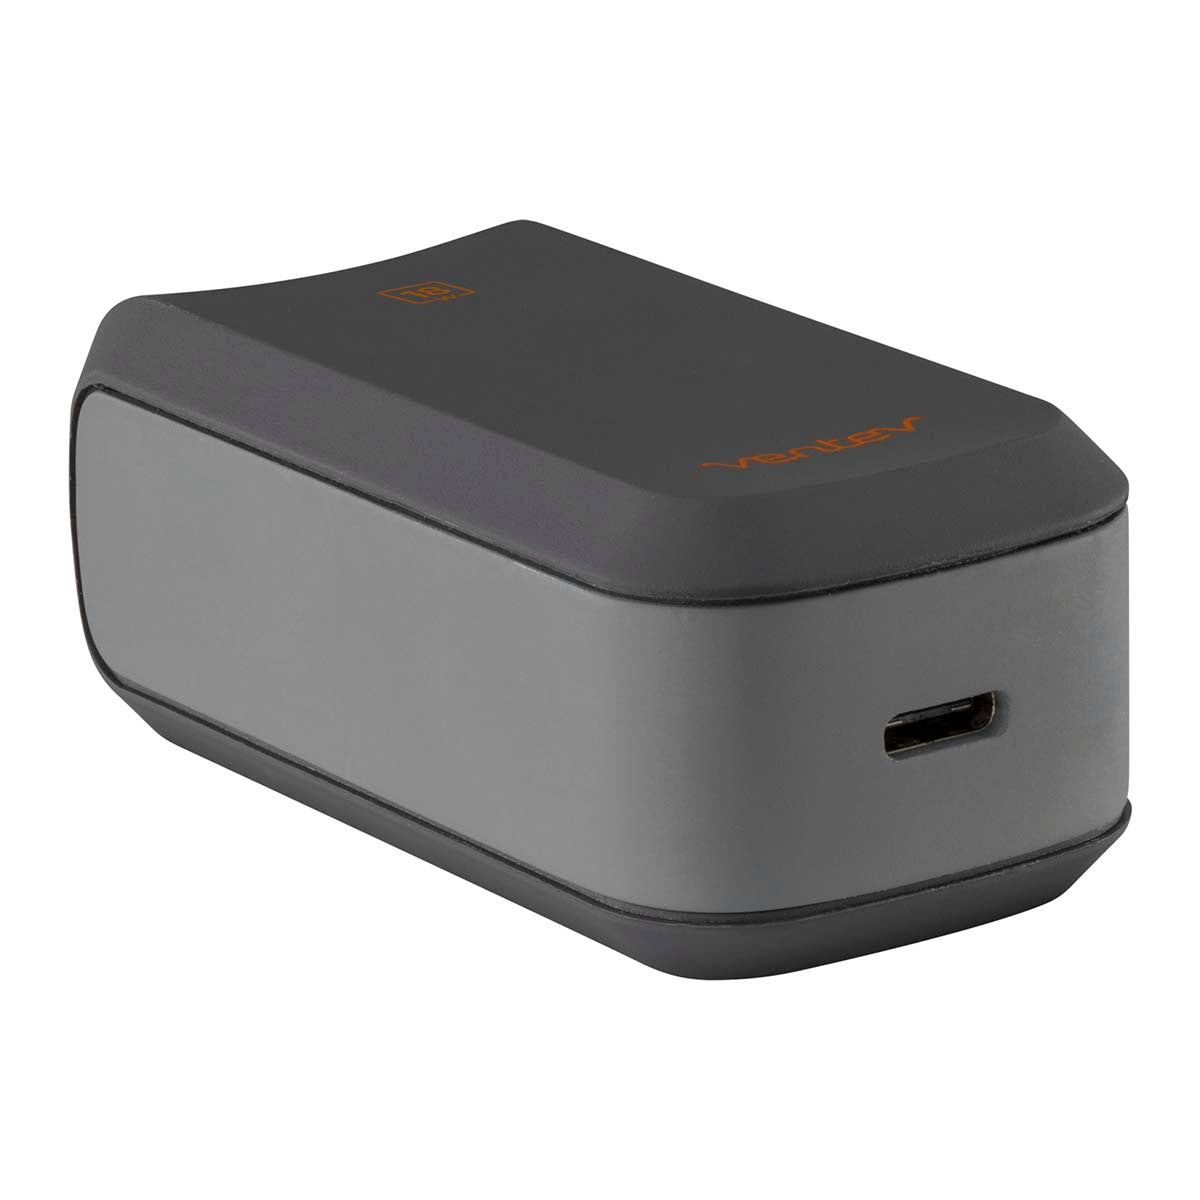 Ventev Power Delivery 18W Travel Charger With USB-C Port